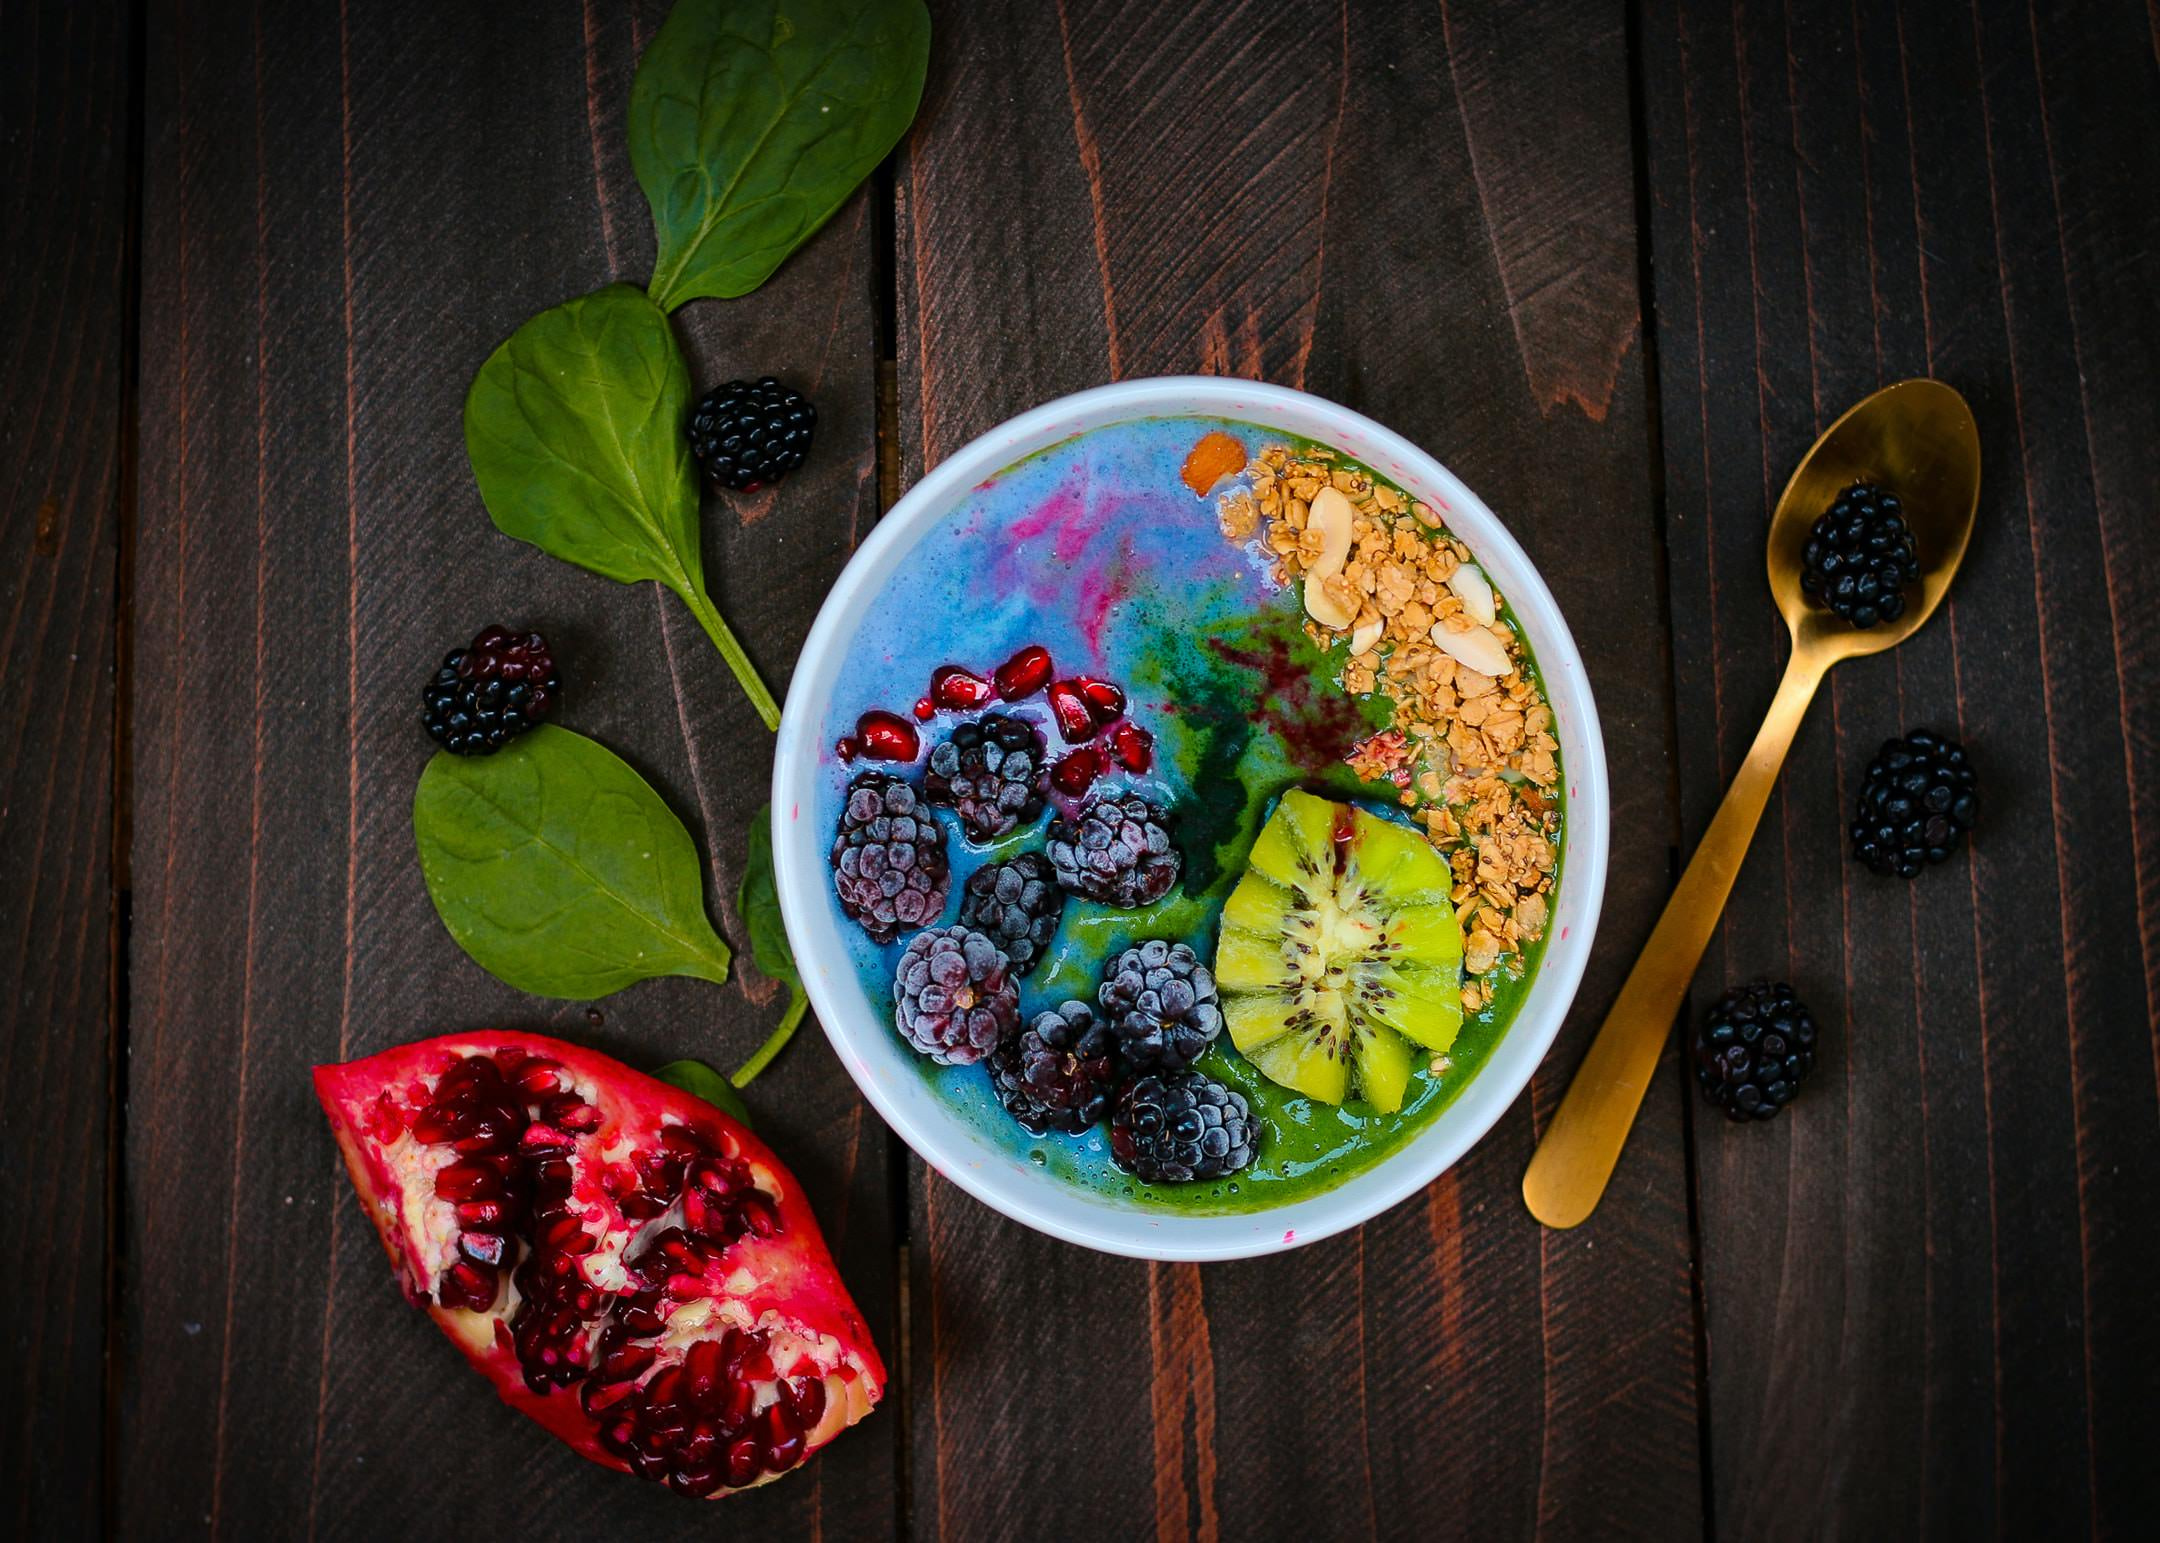 smoothy bowls are a great way to biohack your breakfast